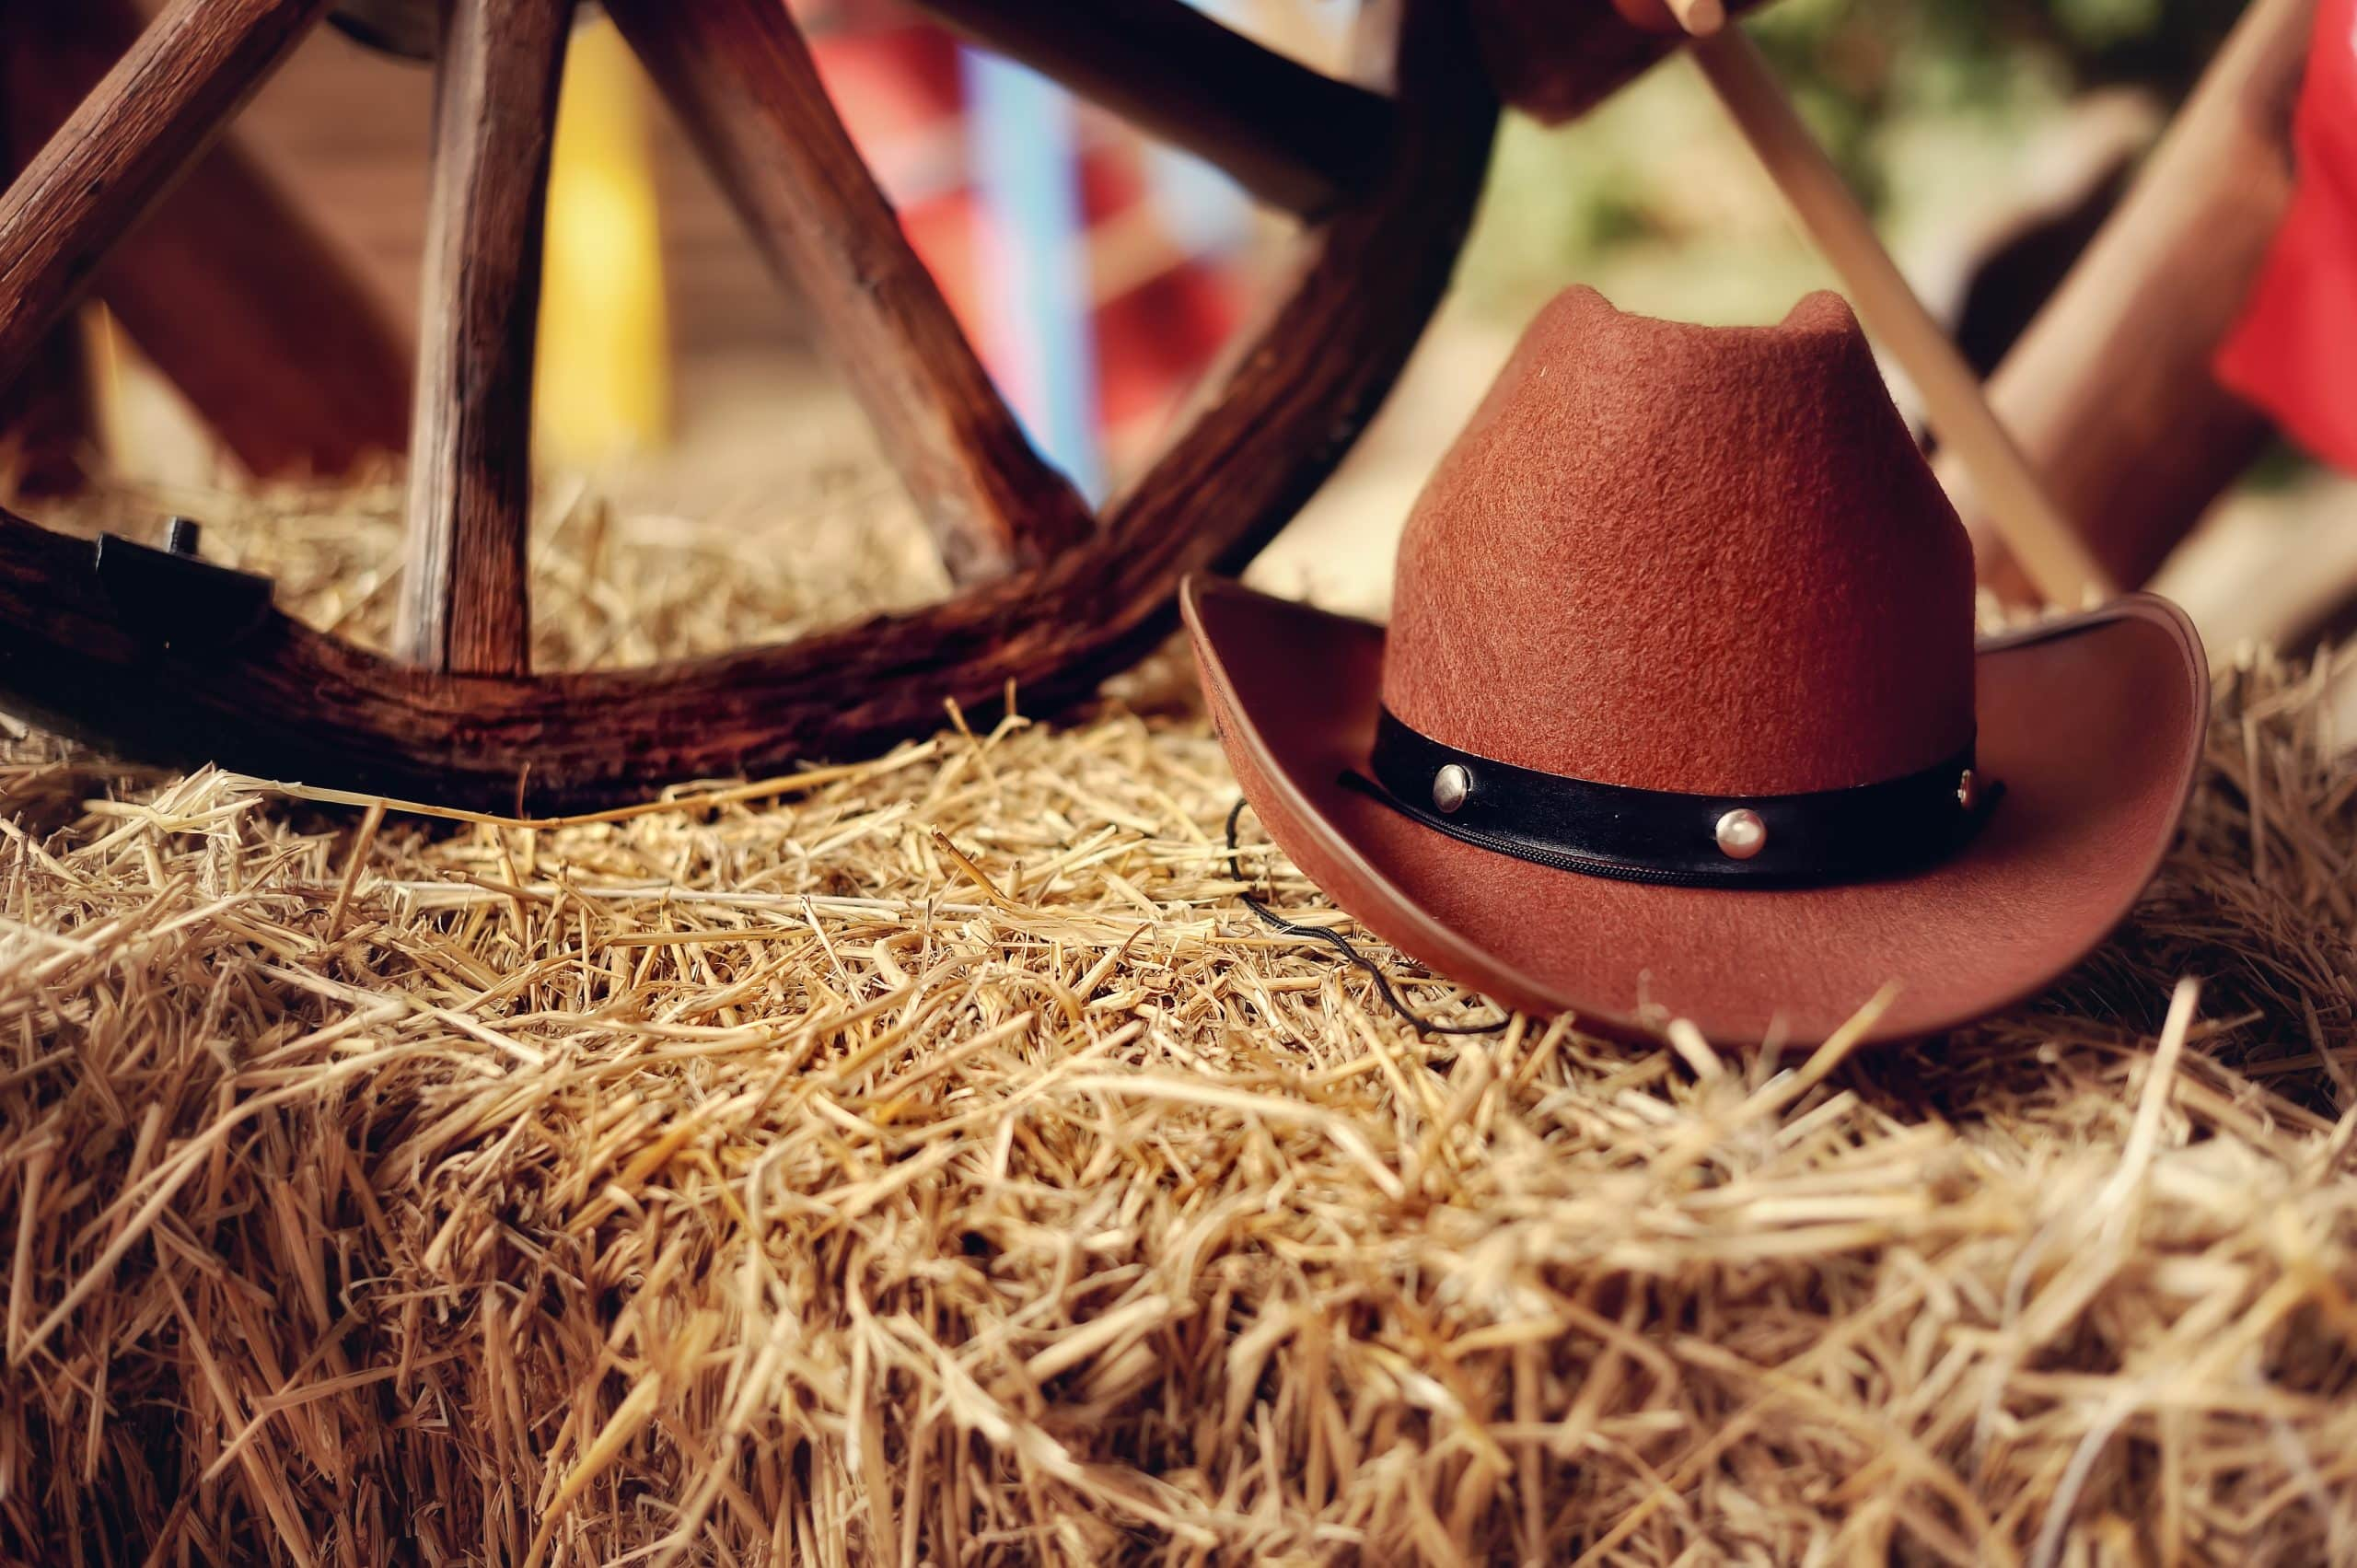 Avanti Senior Living - Cowboy hat